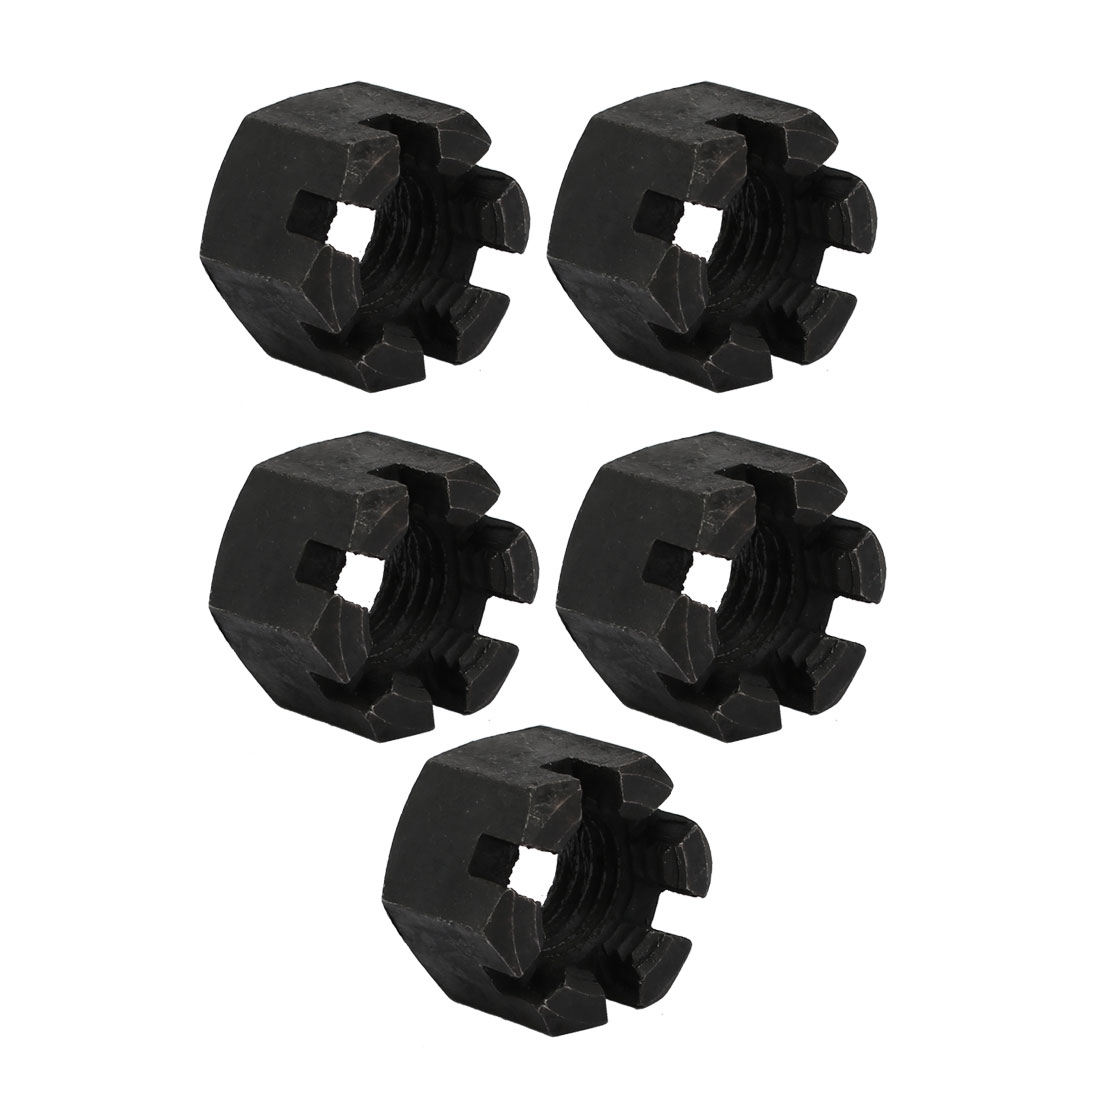 5pcs M20x2.5mm Carbon Steel Grade 8 Hexagon Slotted Castle Nut Black